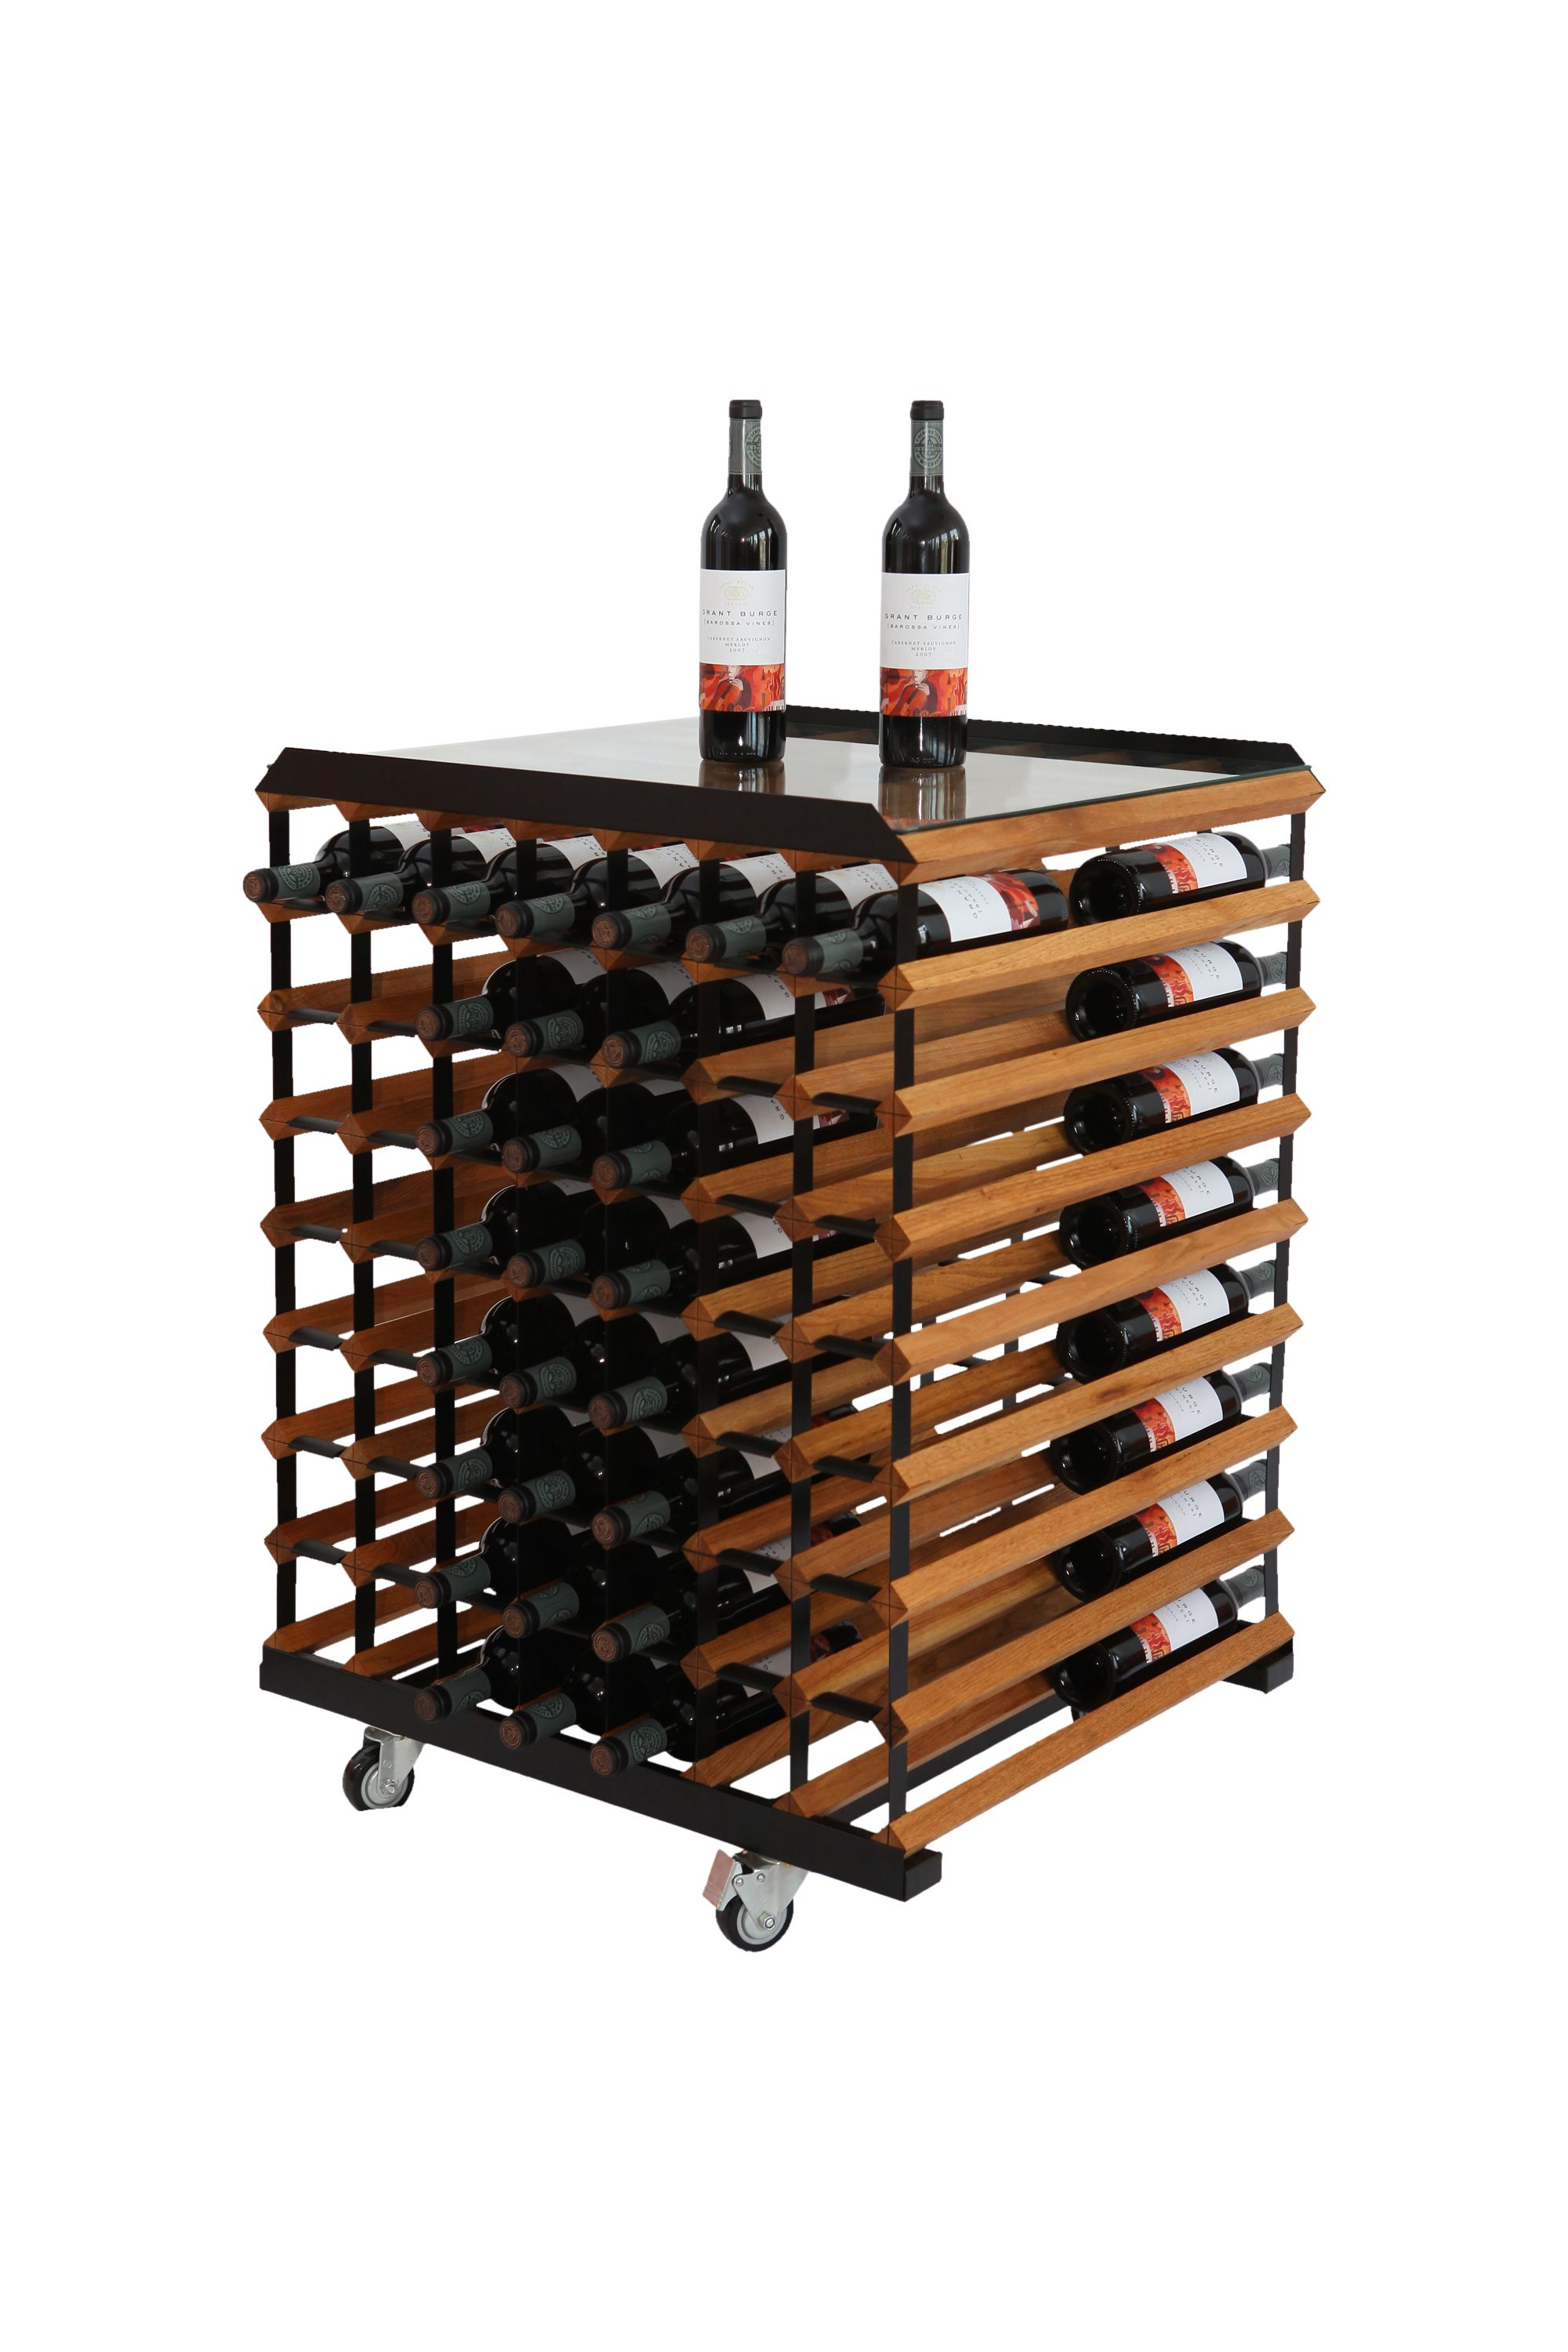 wine bottle storage furniture. BOXX Mobile Tasting Table For 102 Bottles Of Wine. Black Painted Steel And  Walnut Timber Makes This Beautiful Wine Rack Furniture Bottle Storage